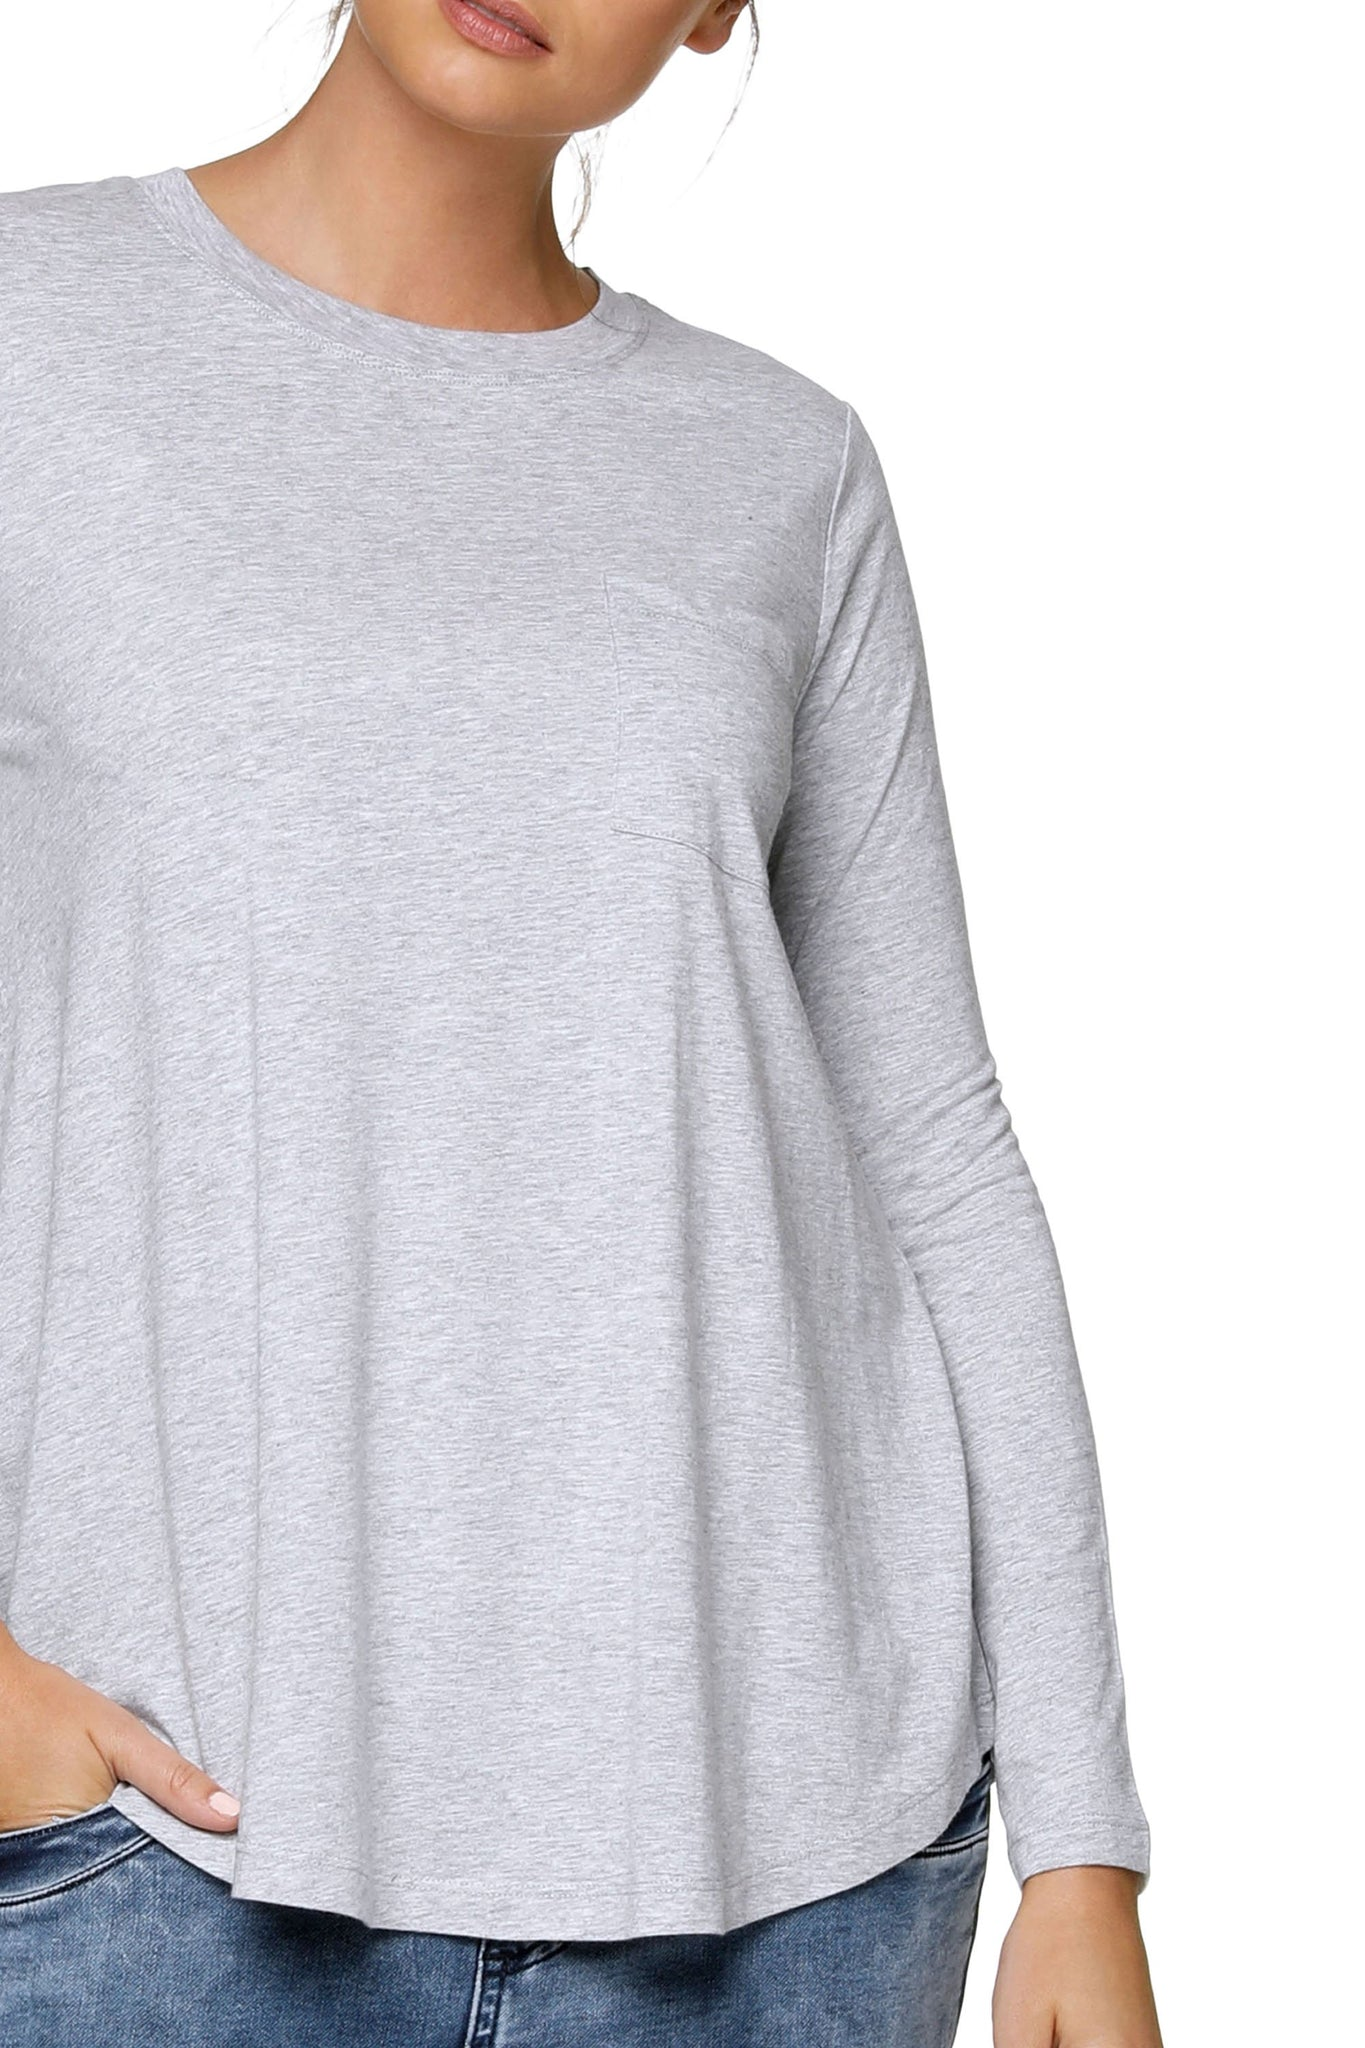 Maternity Long Sleeve Top - Grey Marle 10